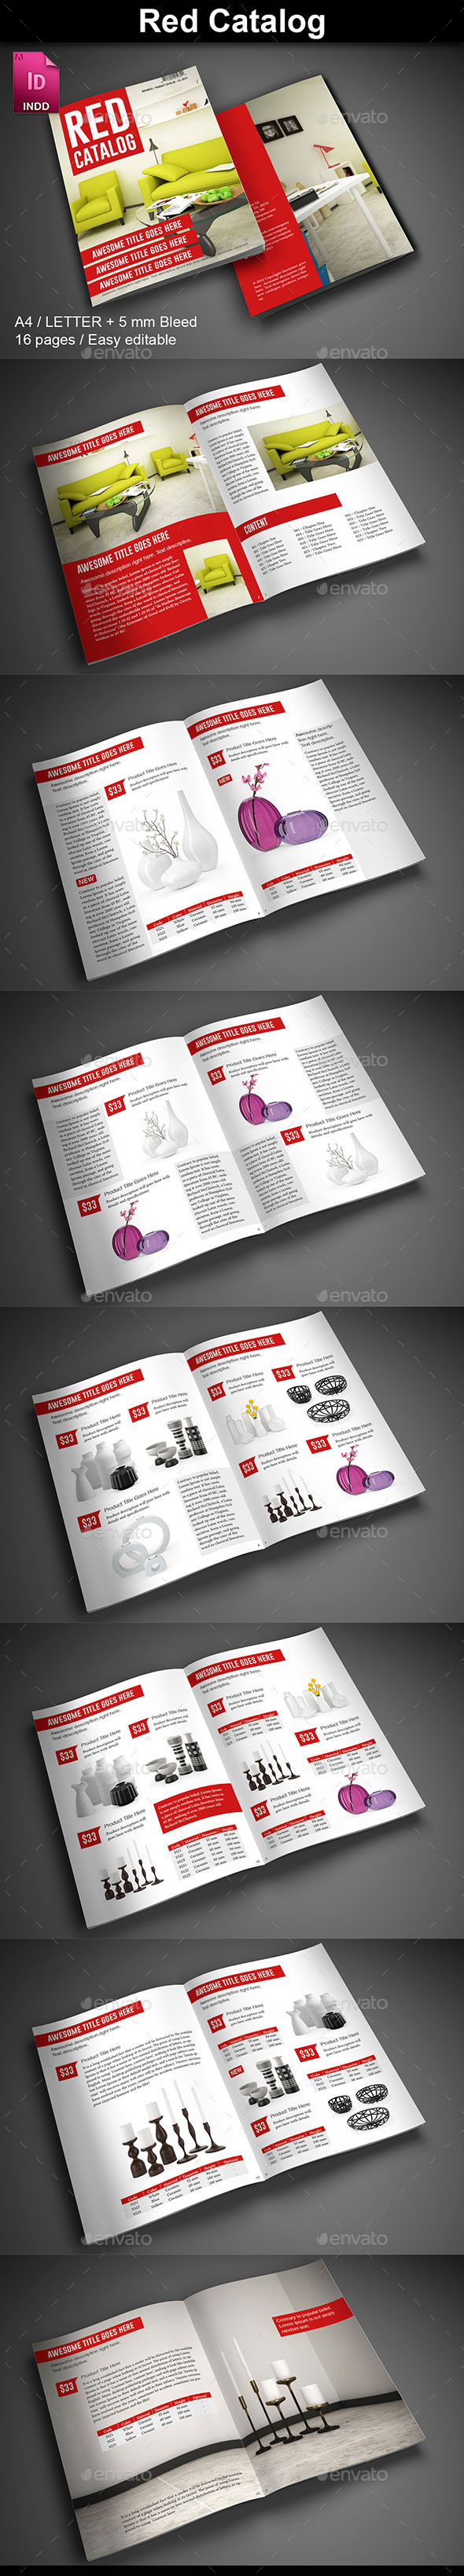 Red Product Catalog - Catalogs Brochures